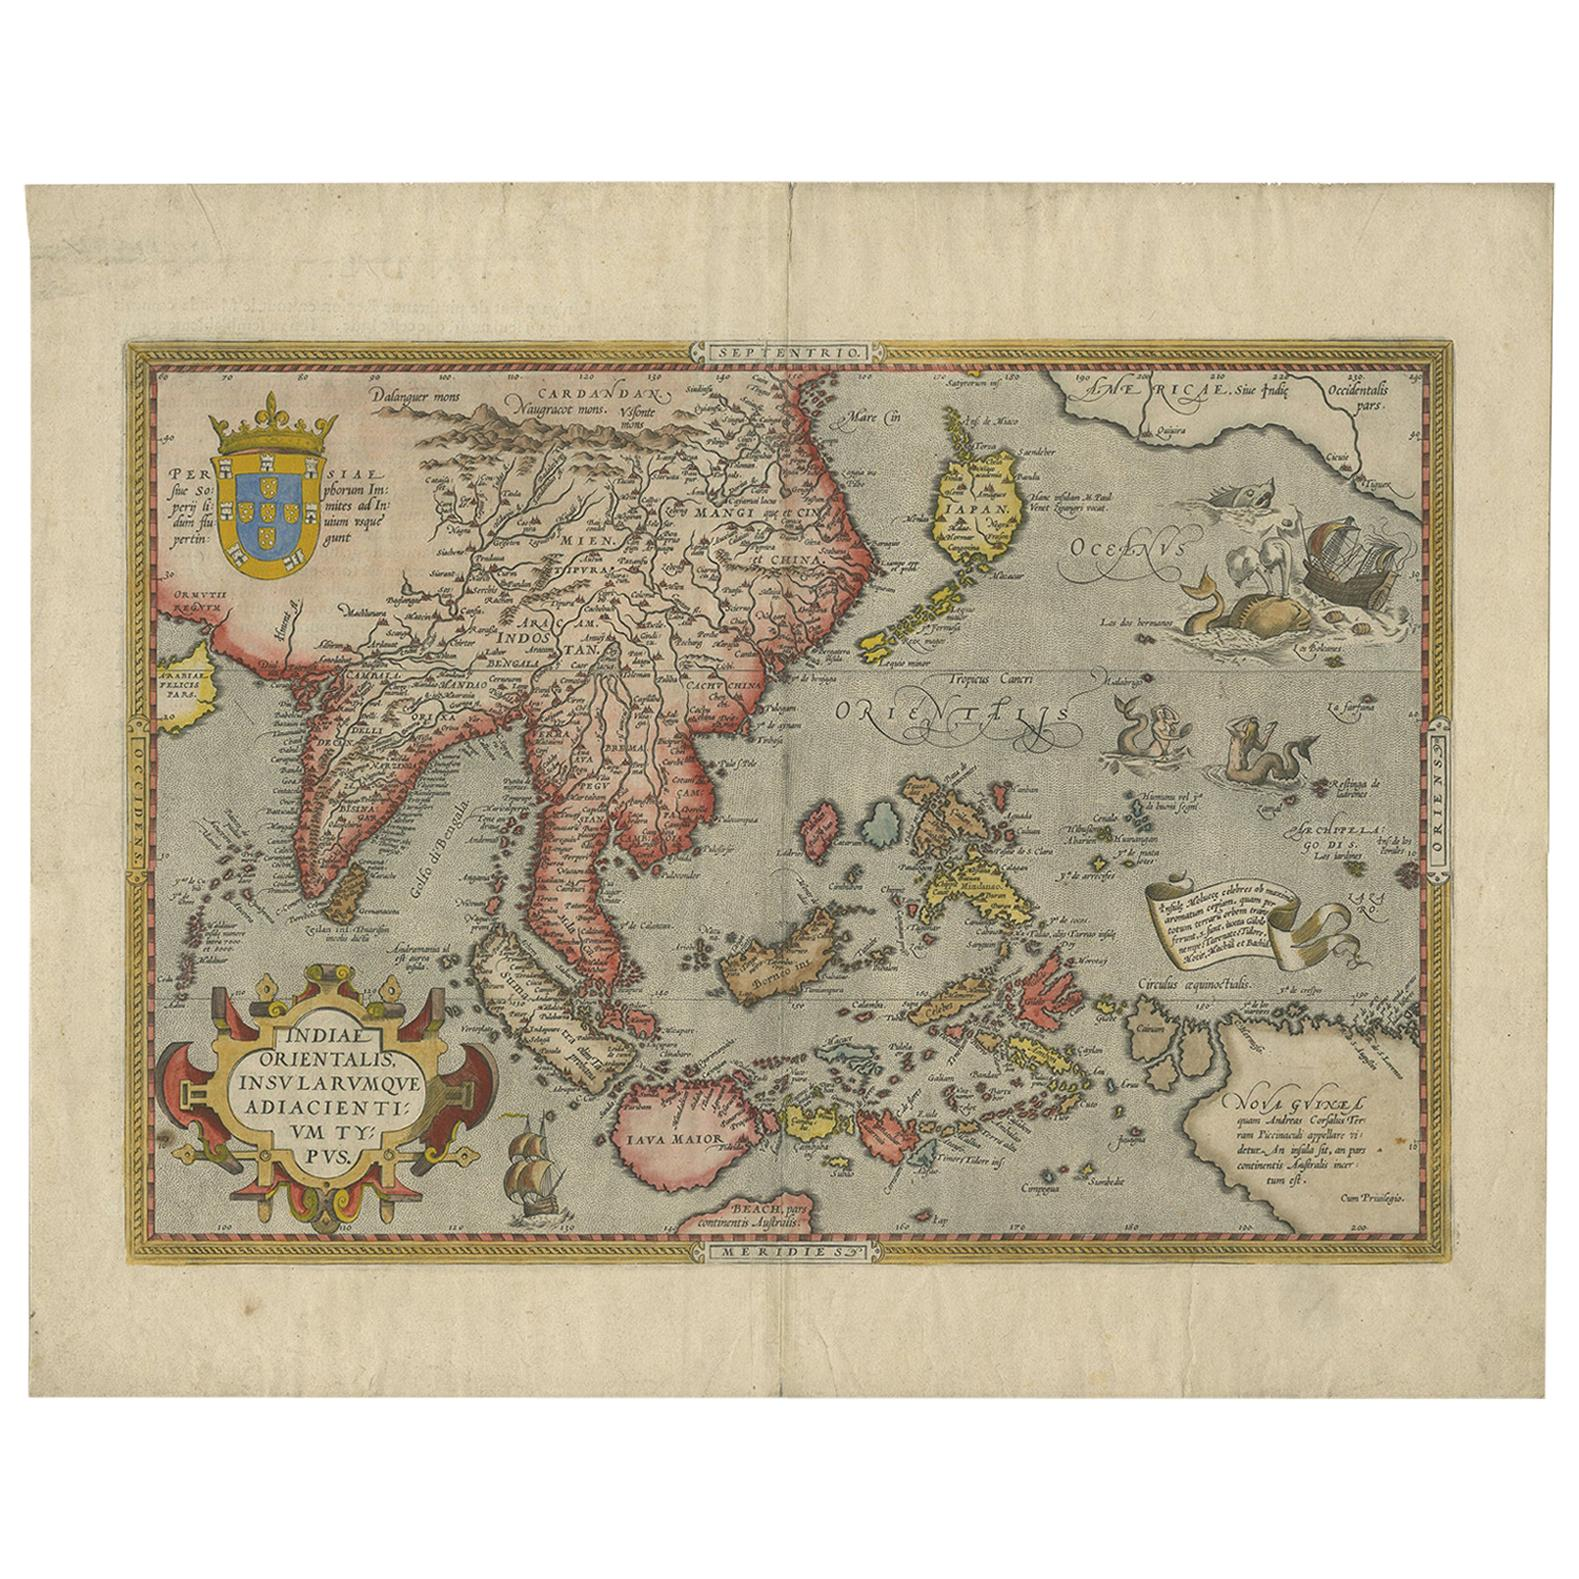 Antique Map of Southeast Asia by Ortelius '1587'